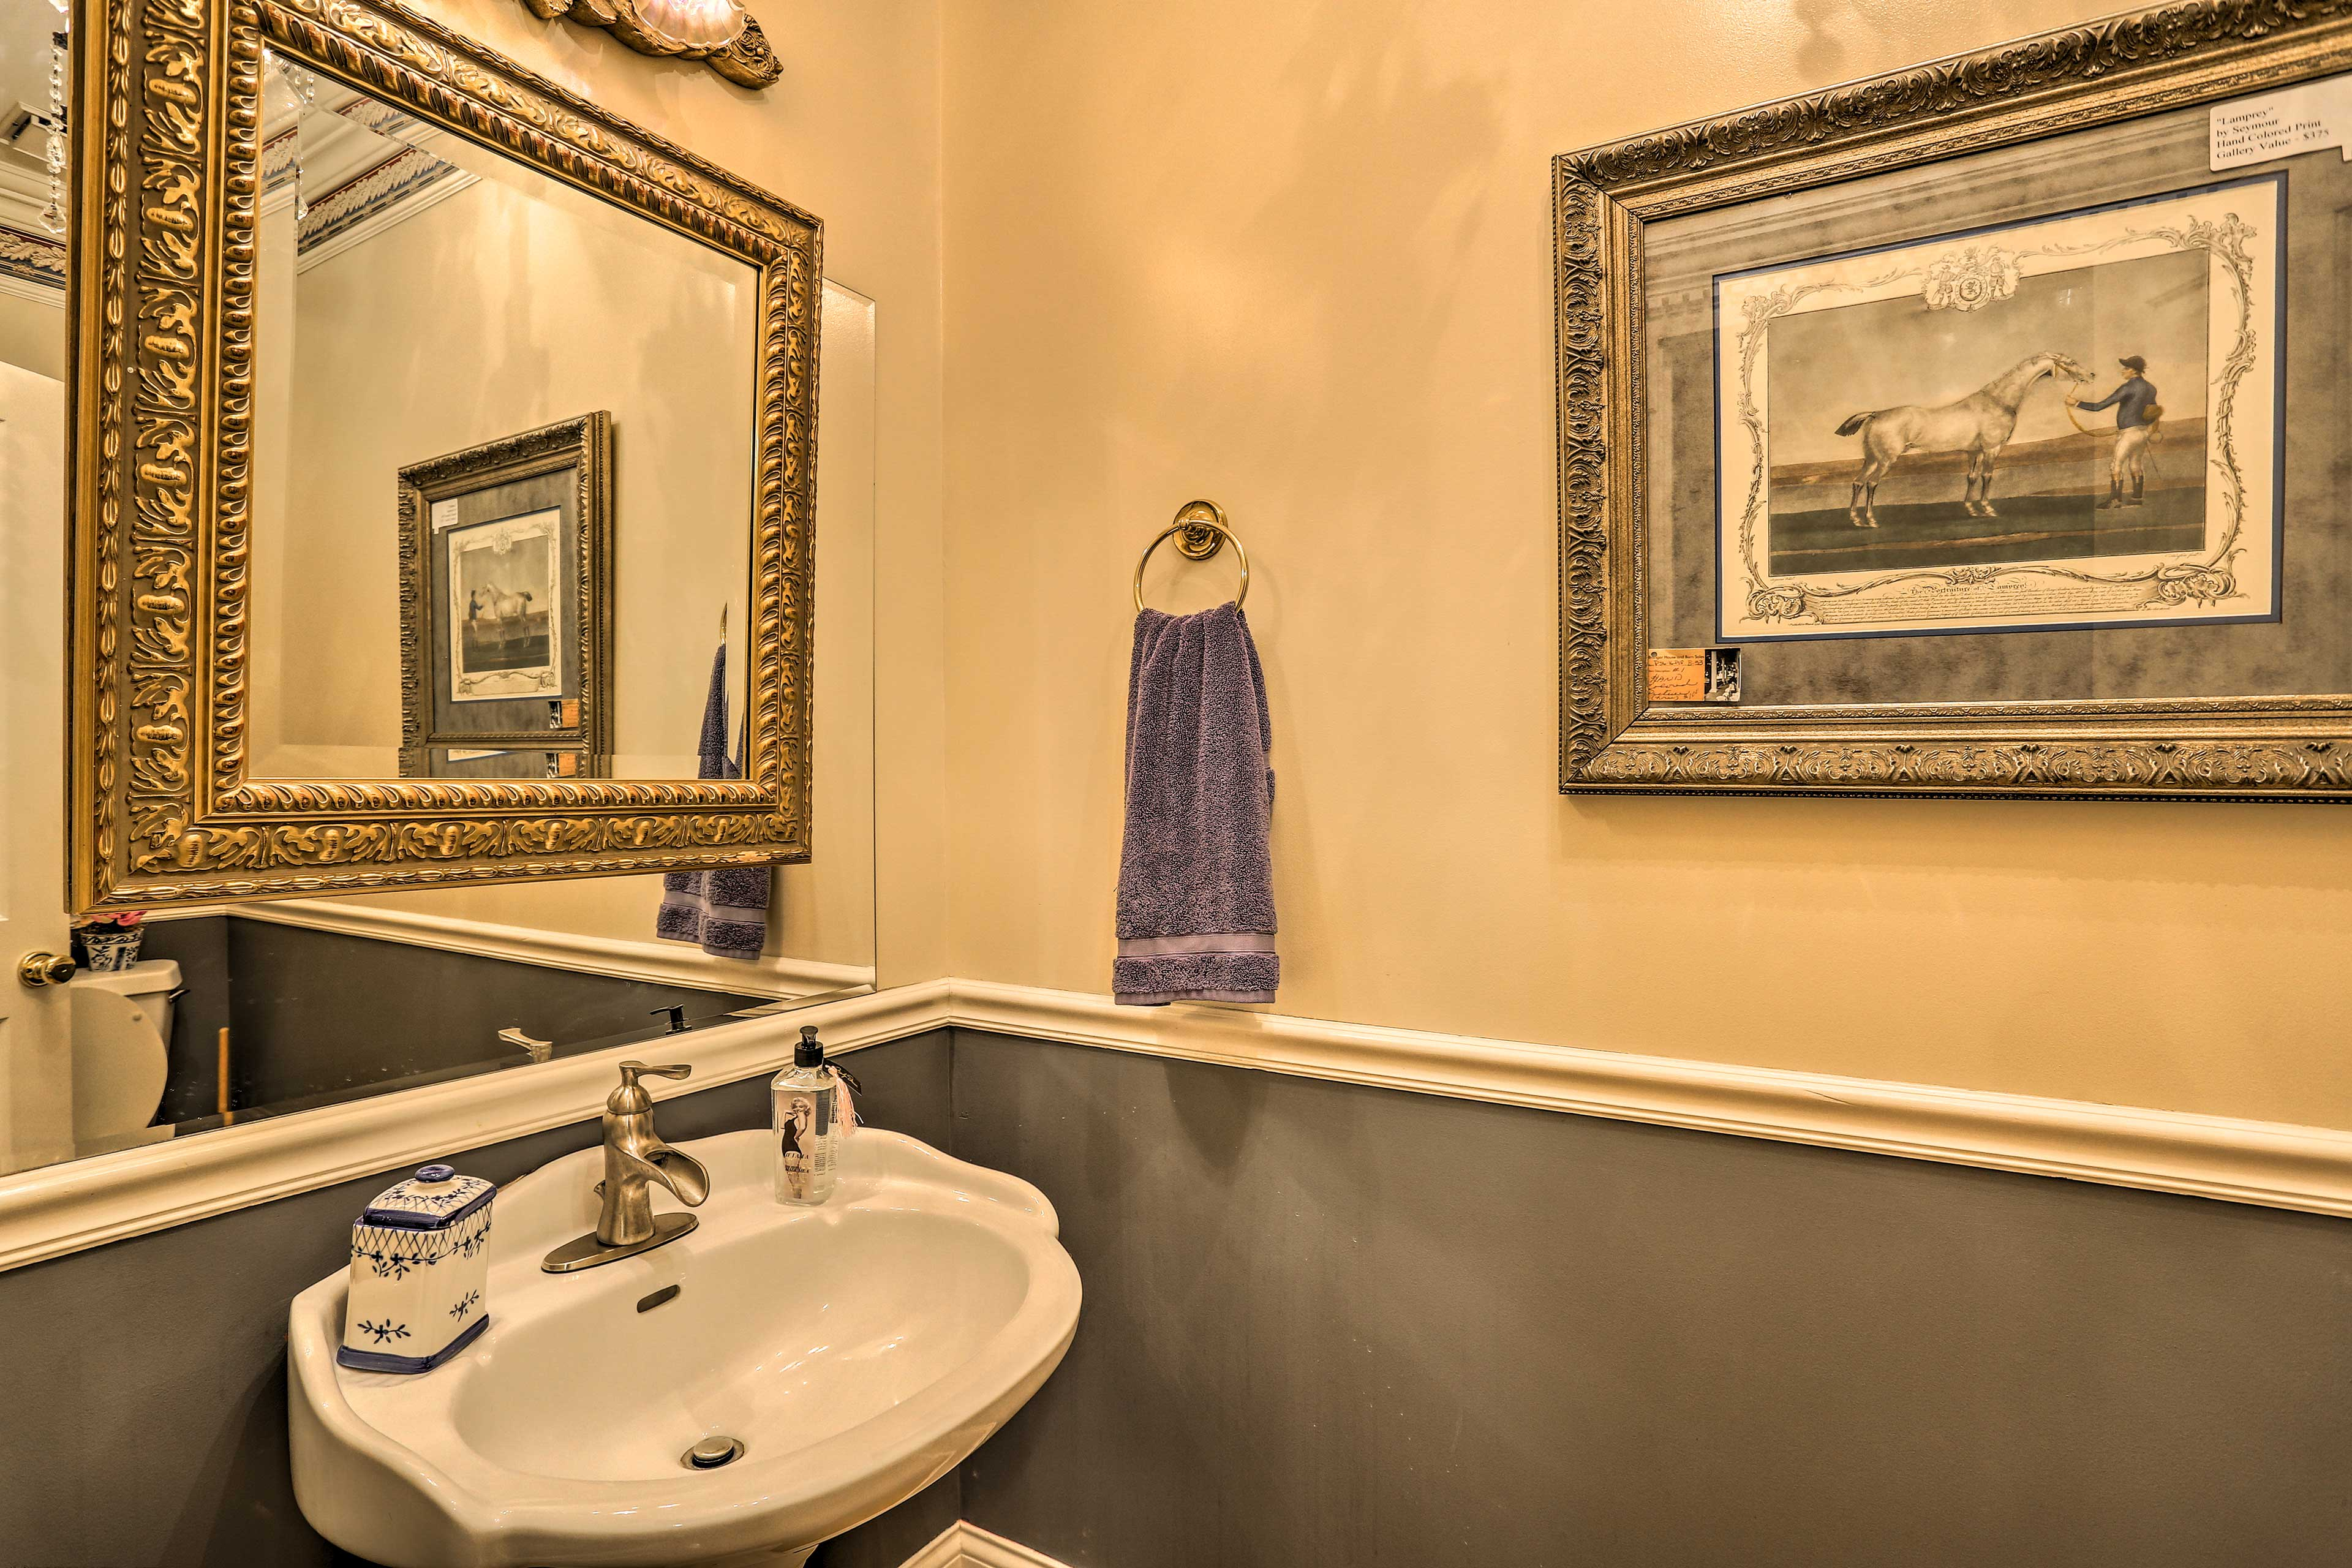 Wash up before dinner in this half bath!